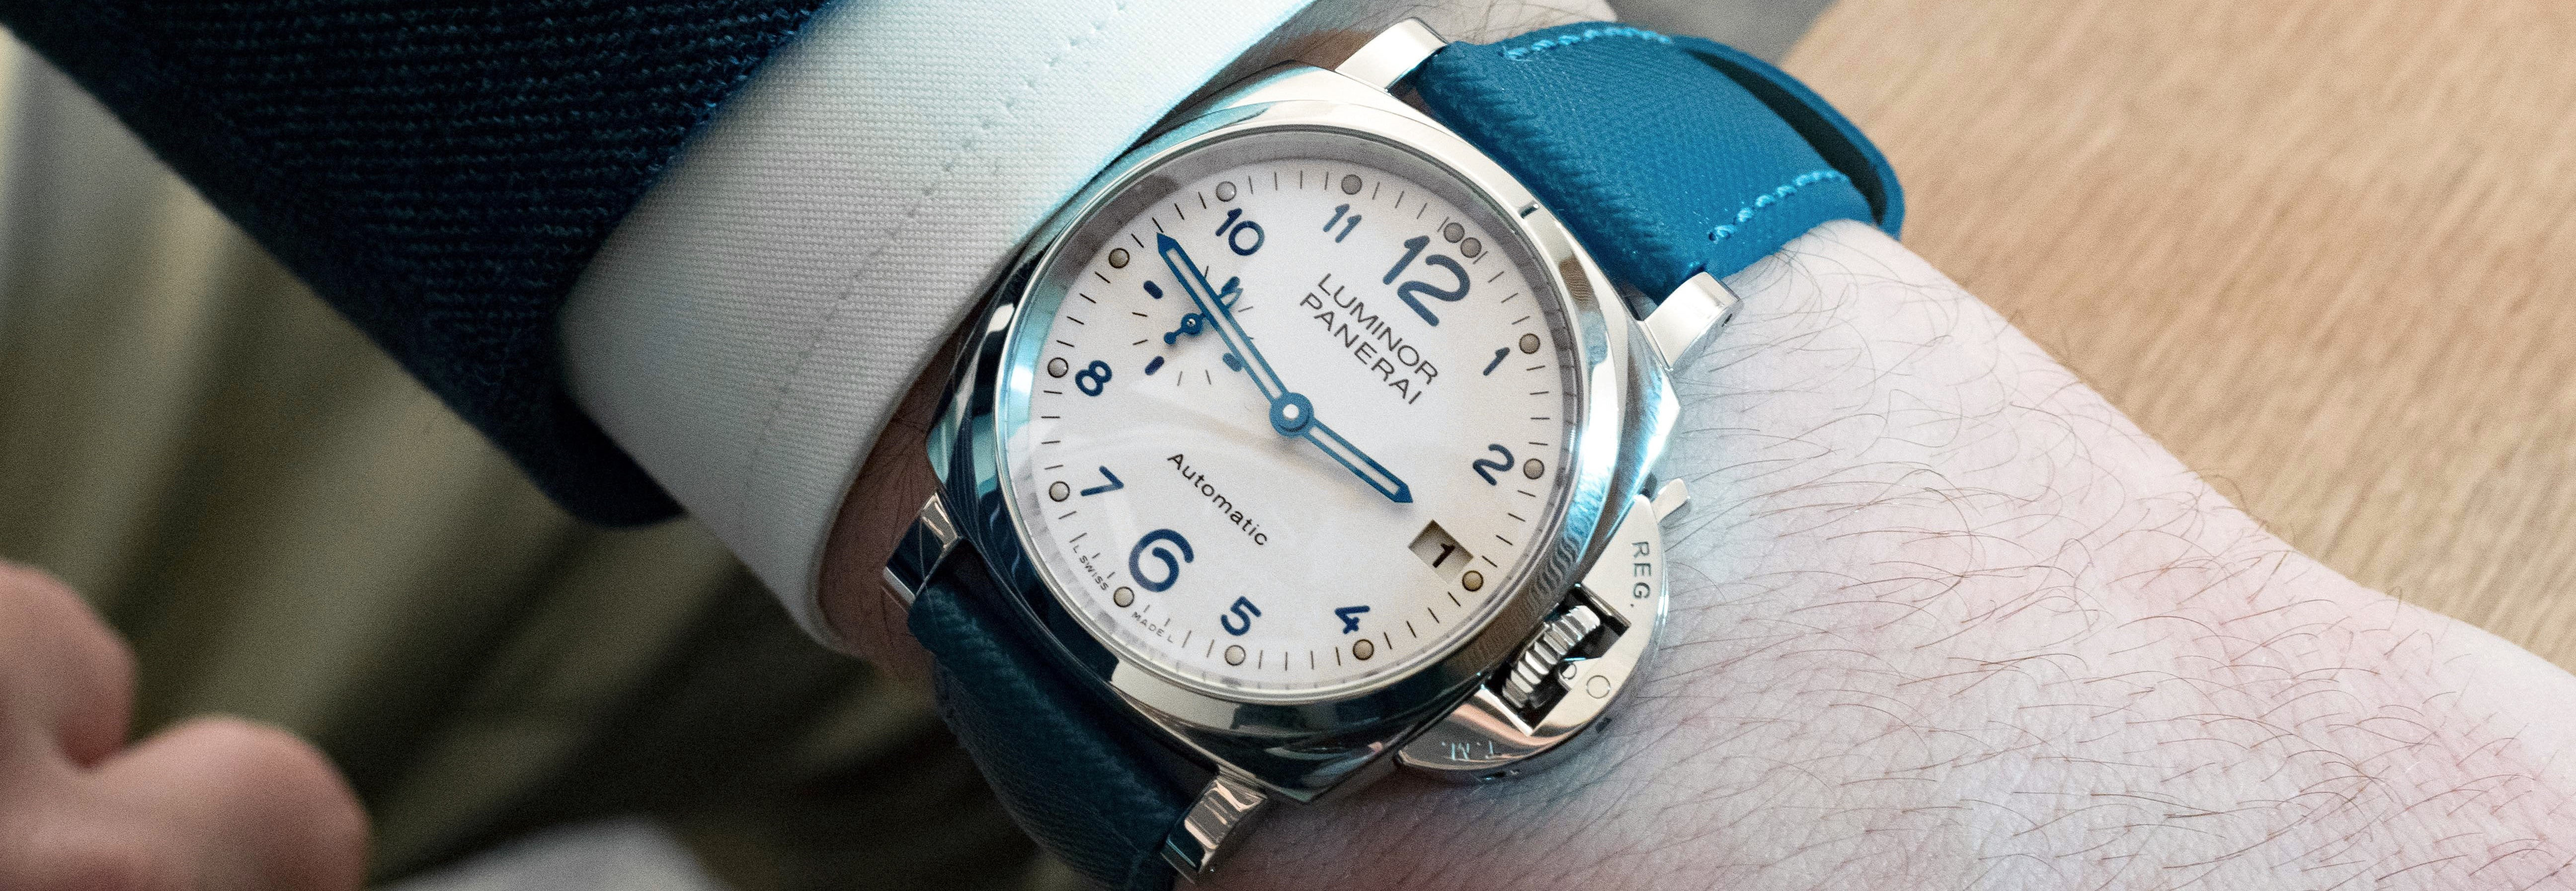 Small-faced men's watches are coming back in trend